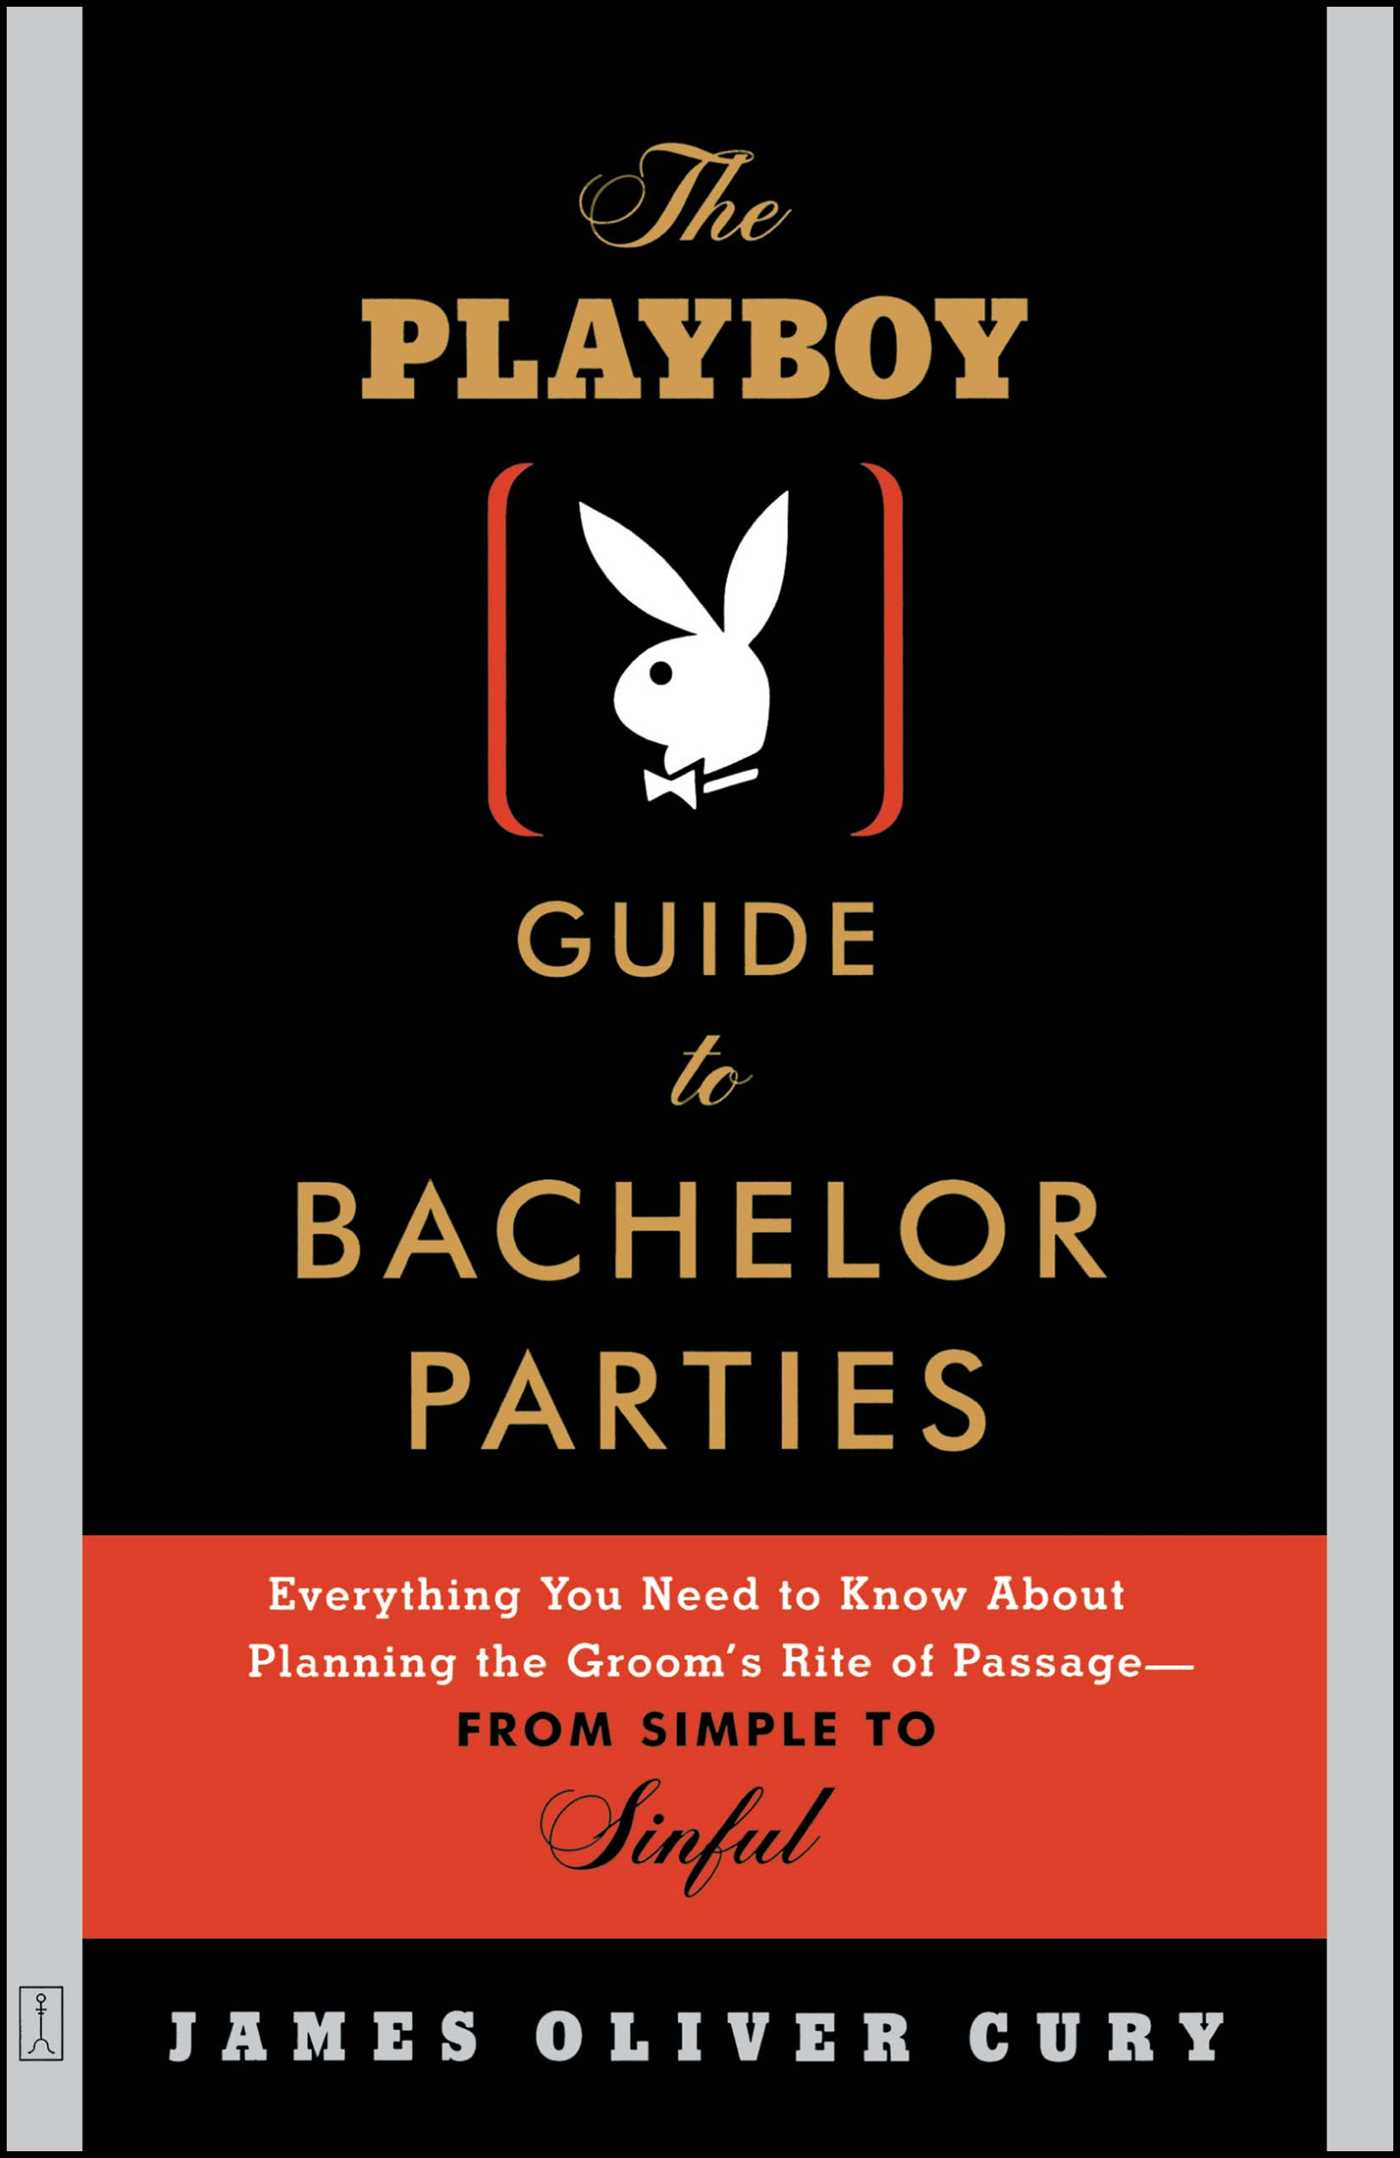 The playboy guide to bachelor parties 9780743232890 hr